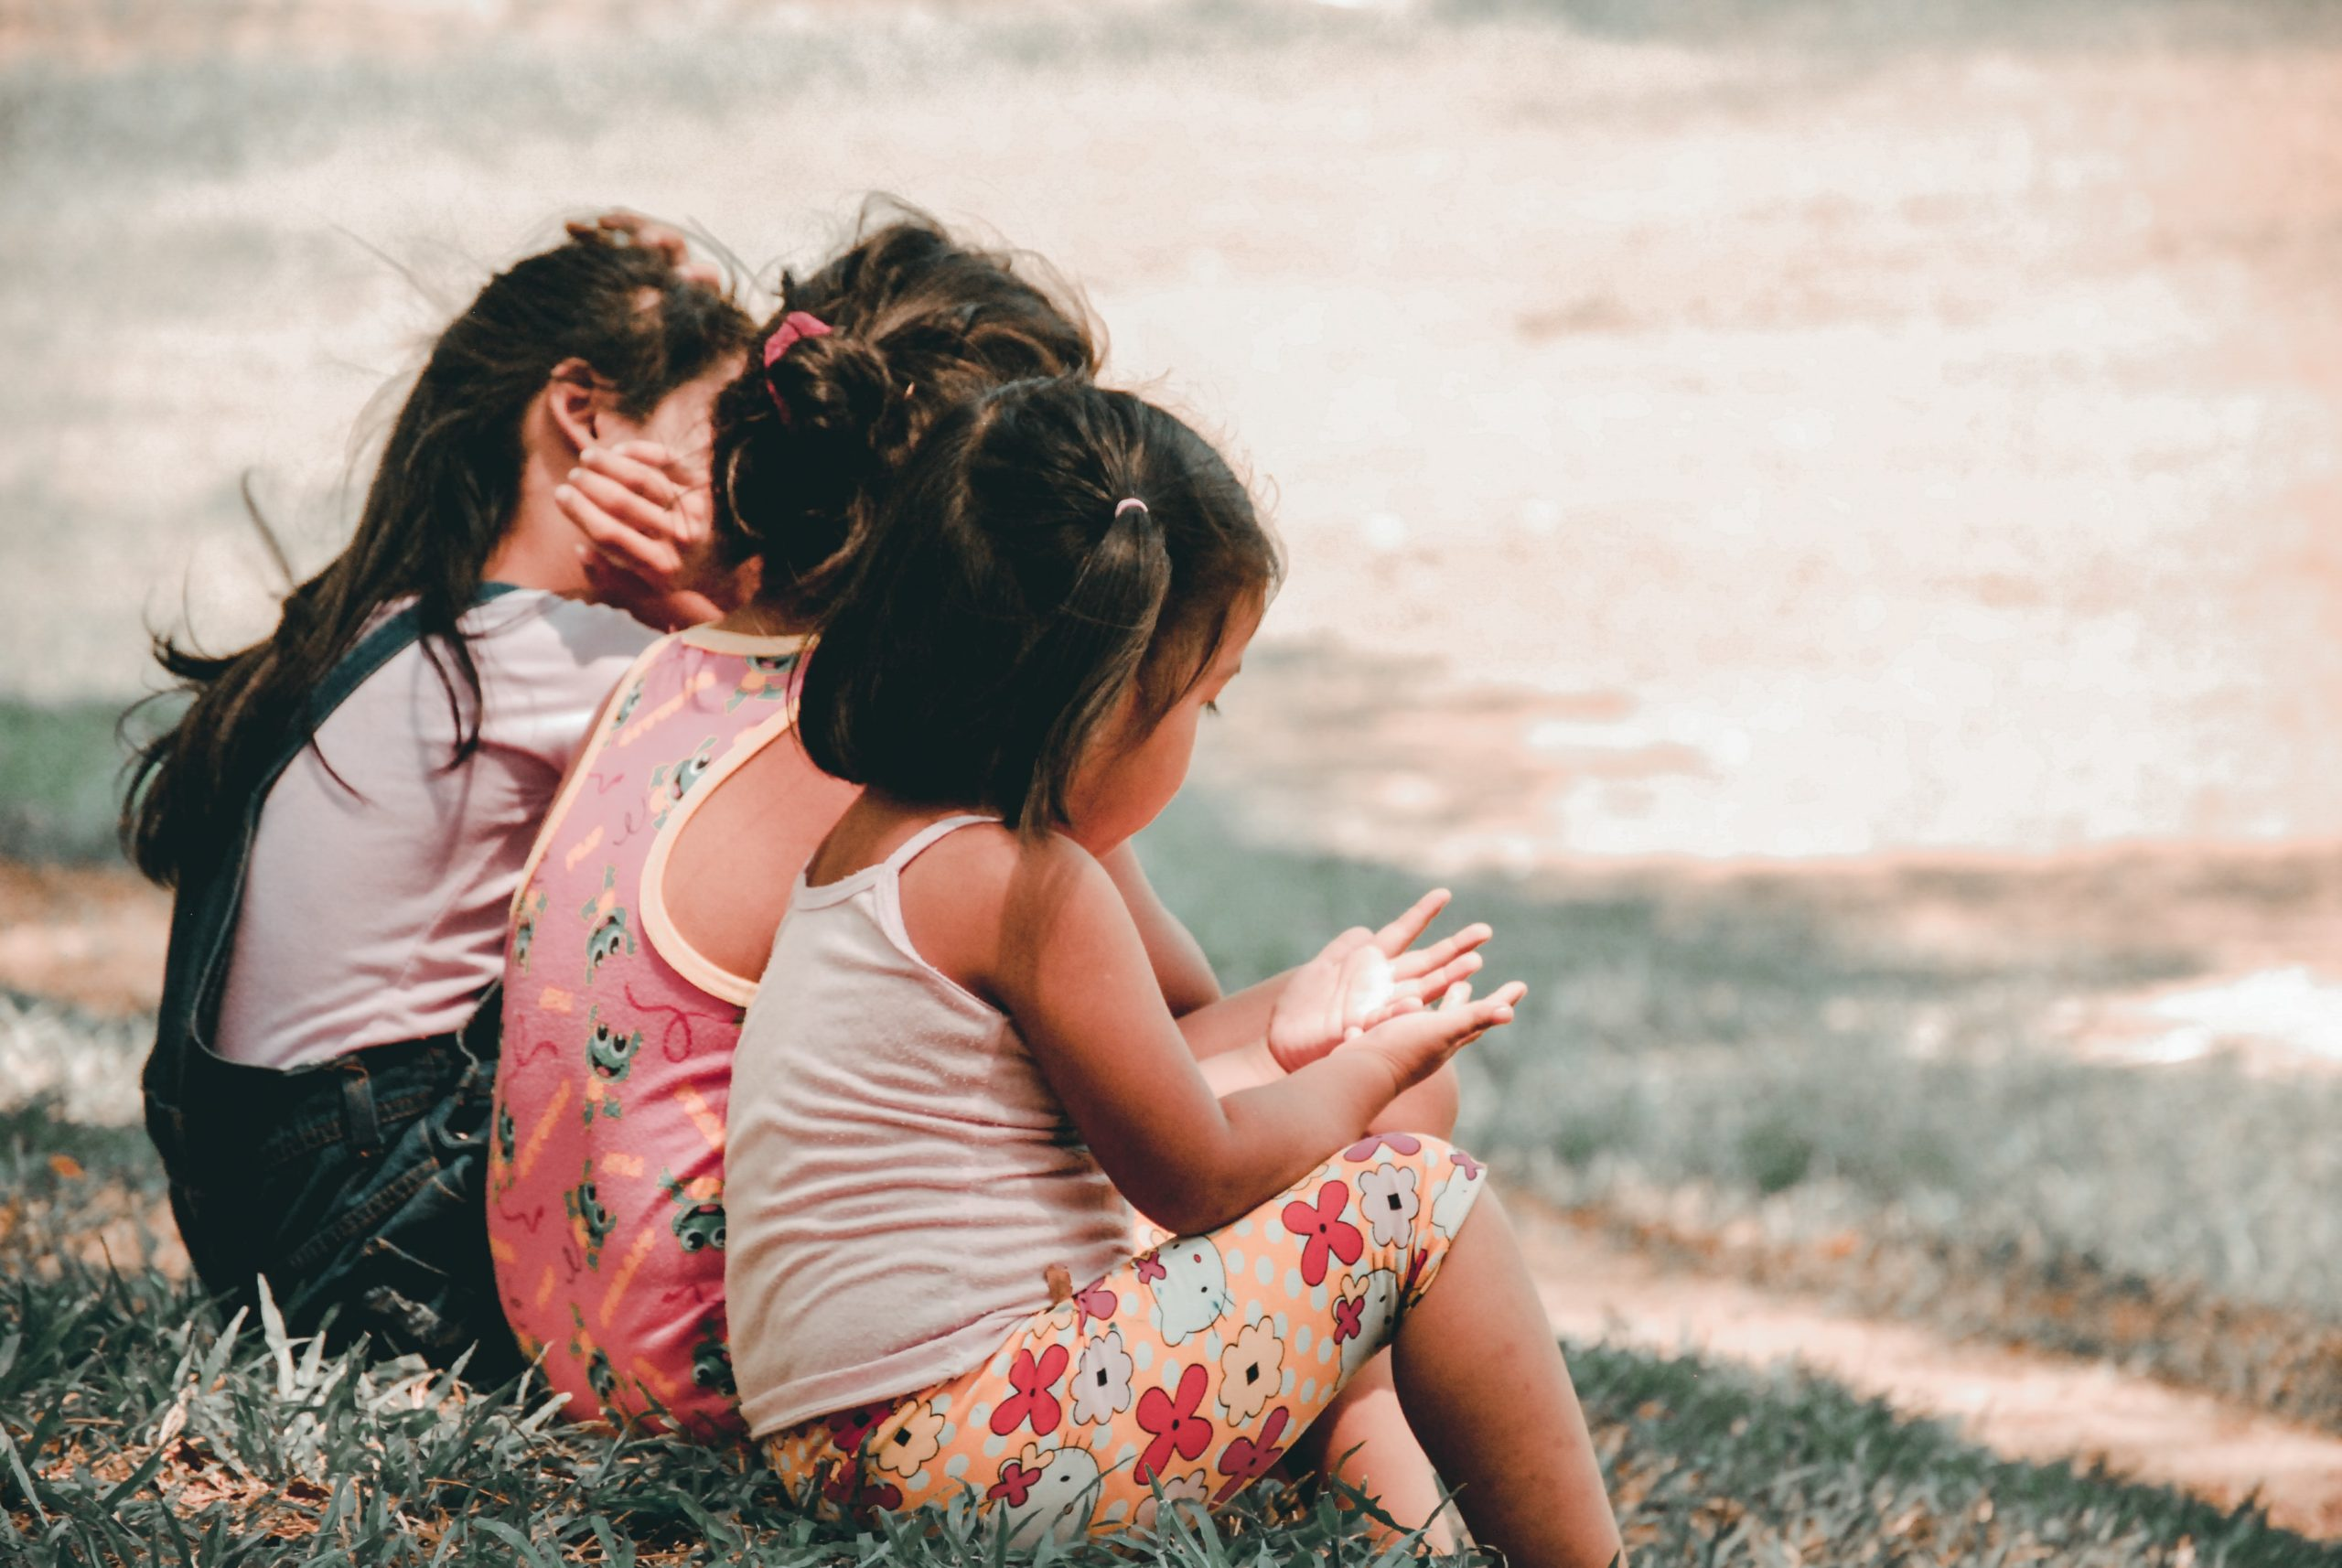 Doubting God's Goodness in a World Where Children Die